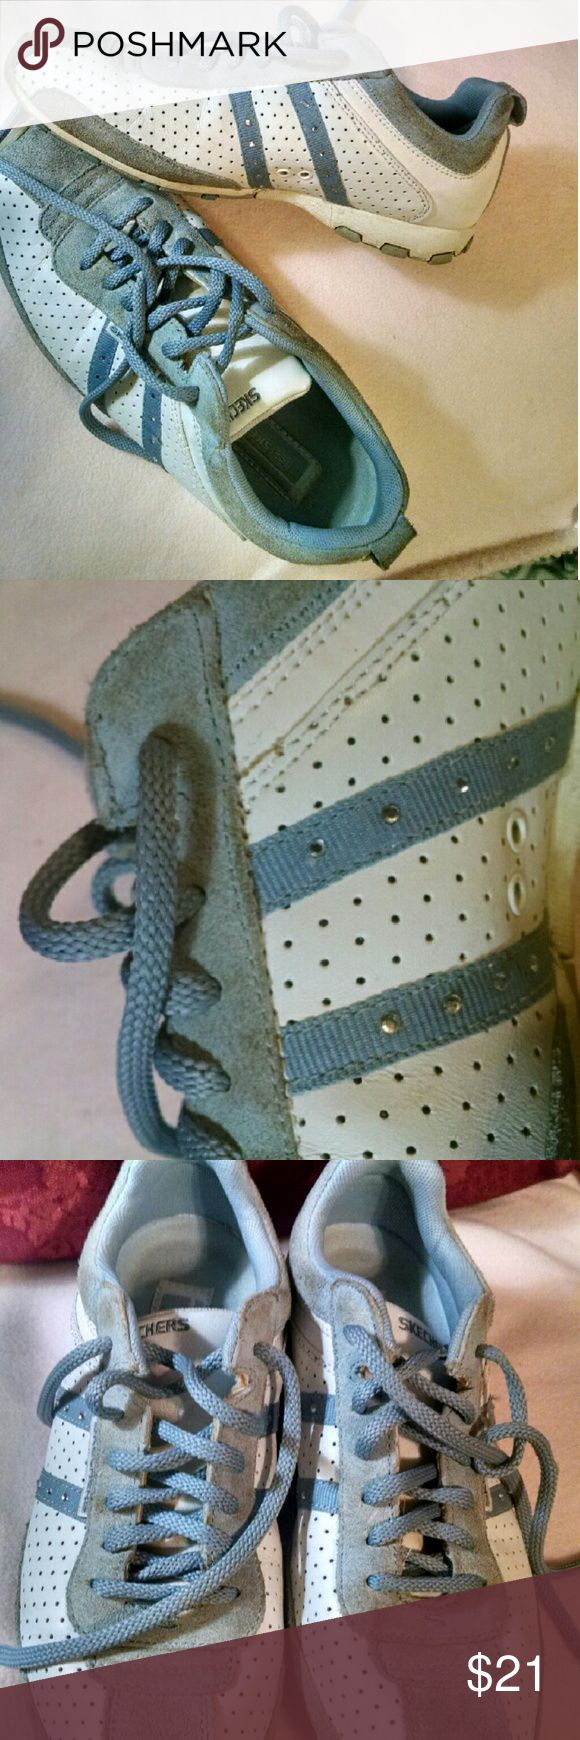 BOGO FREE💕Sketchers shoes Cute white and  blue sketchers..Very small silver studs bring a bit  'o bling. Excellent used condition. sketchers Shoes Athletic Shoes